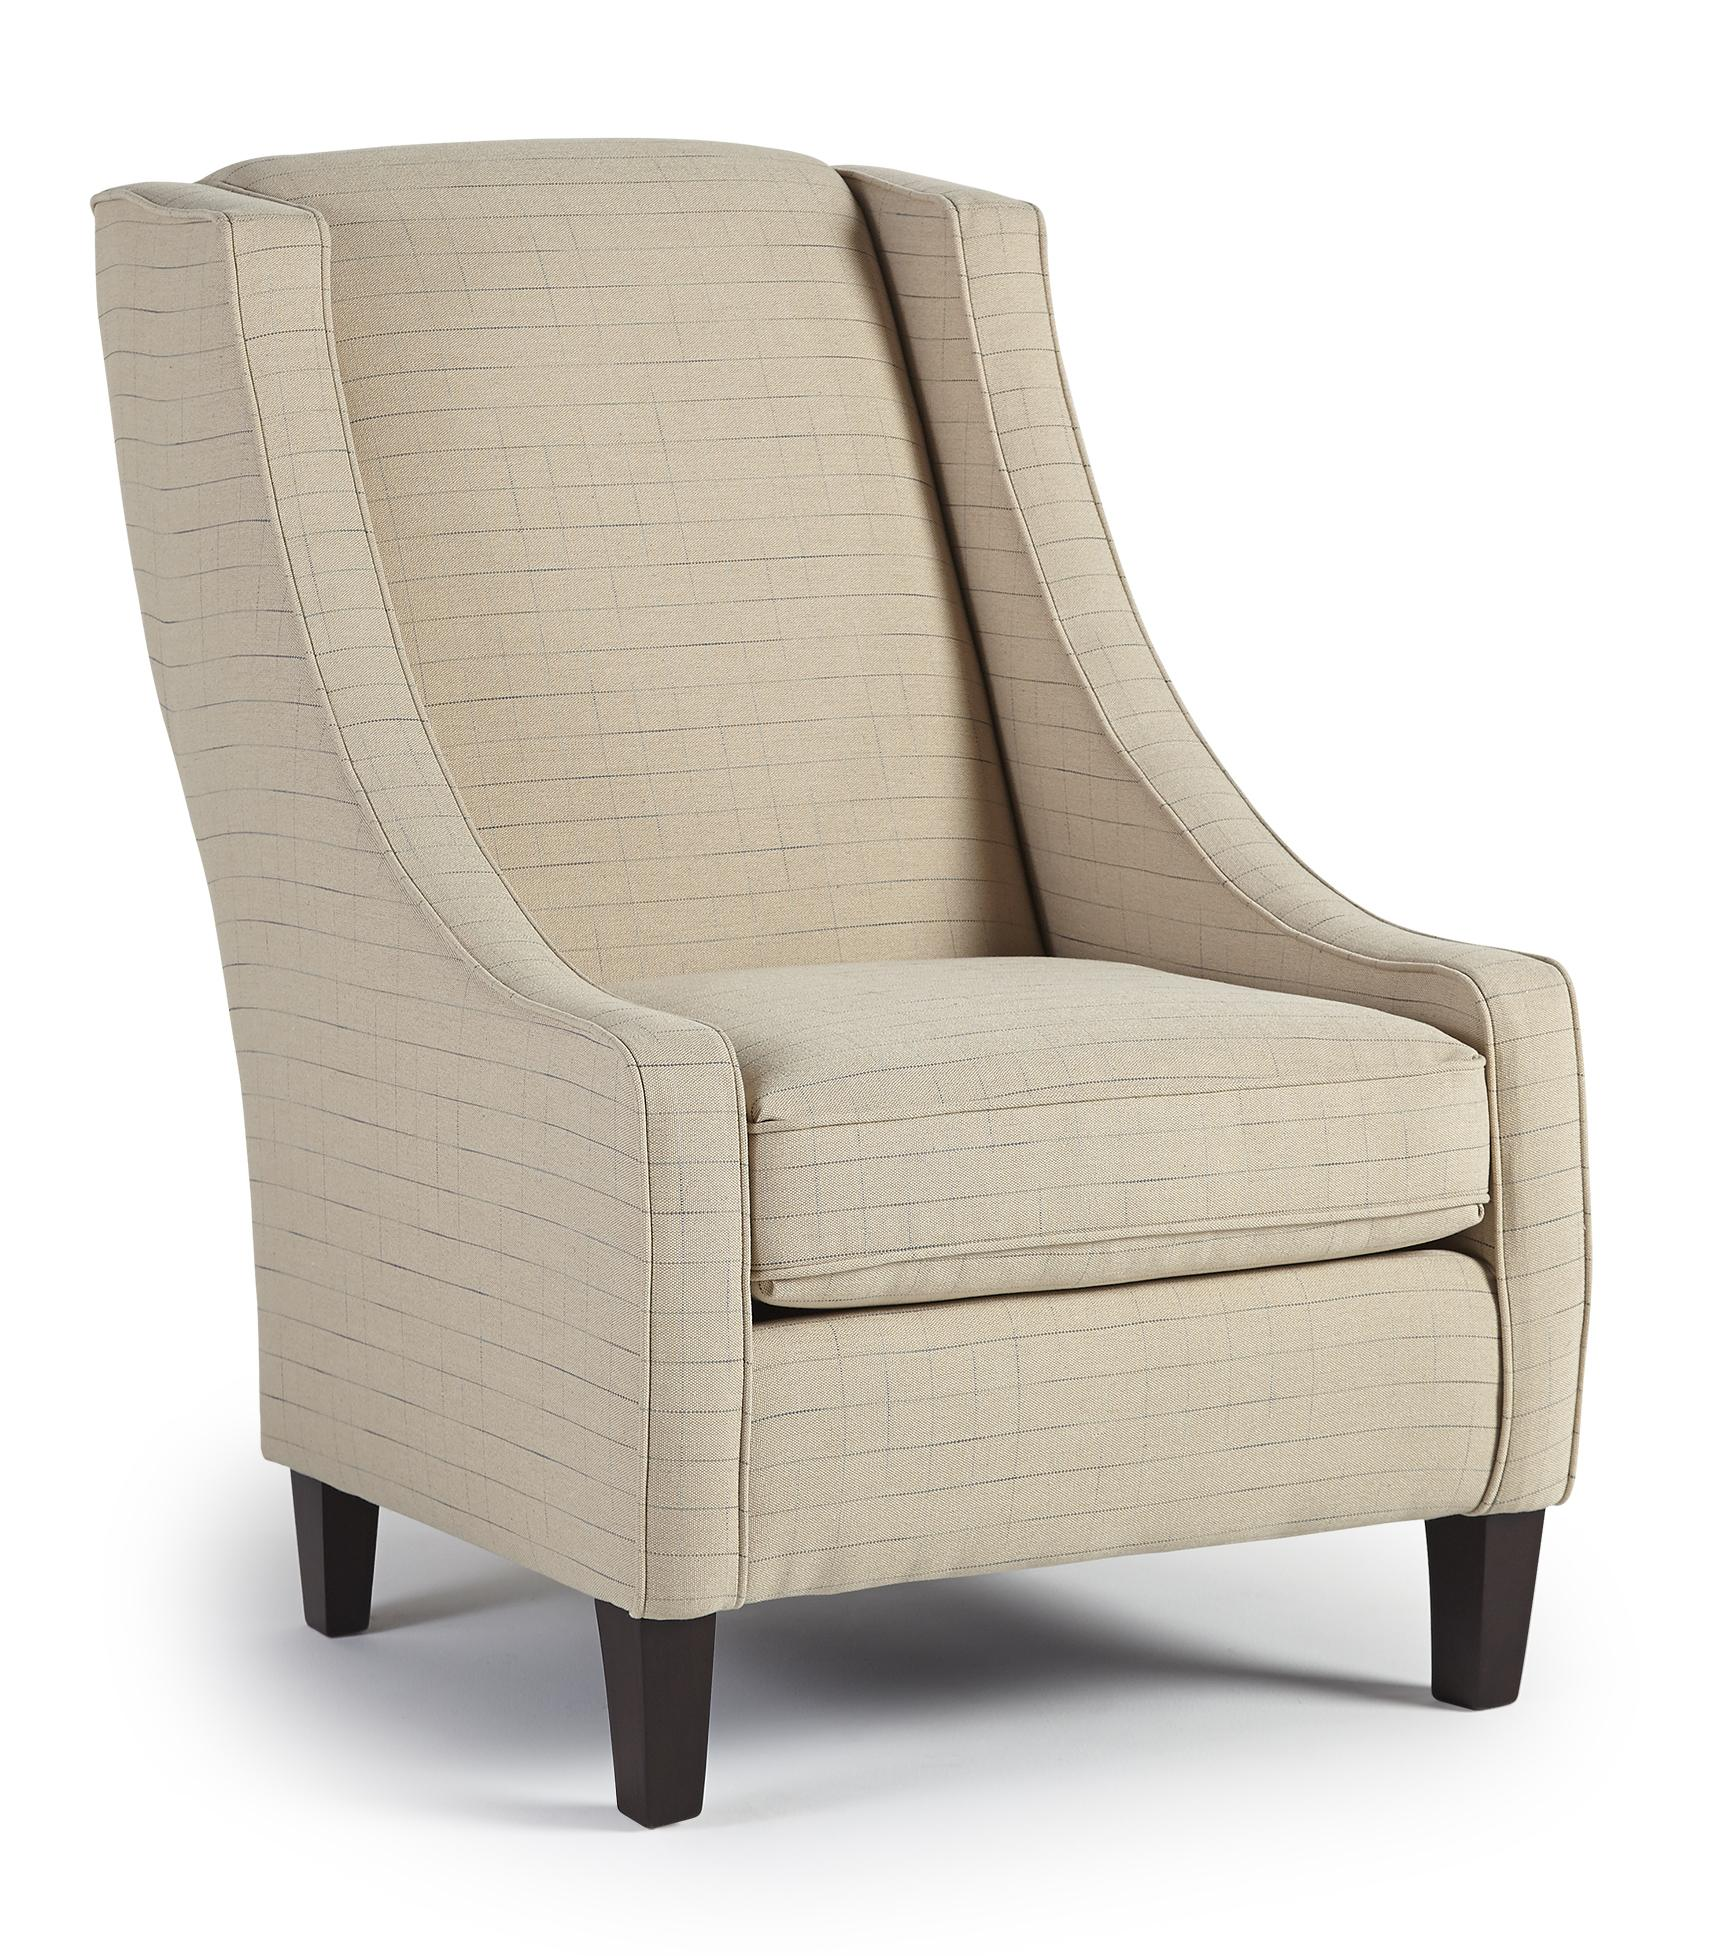 Club Chairs Janice Club Chair by Best Home Furnishings at Lapeer Furniture & Mattress Center